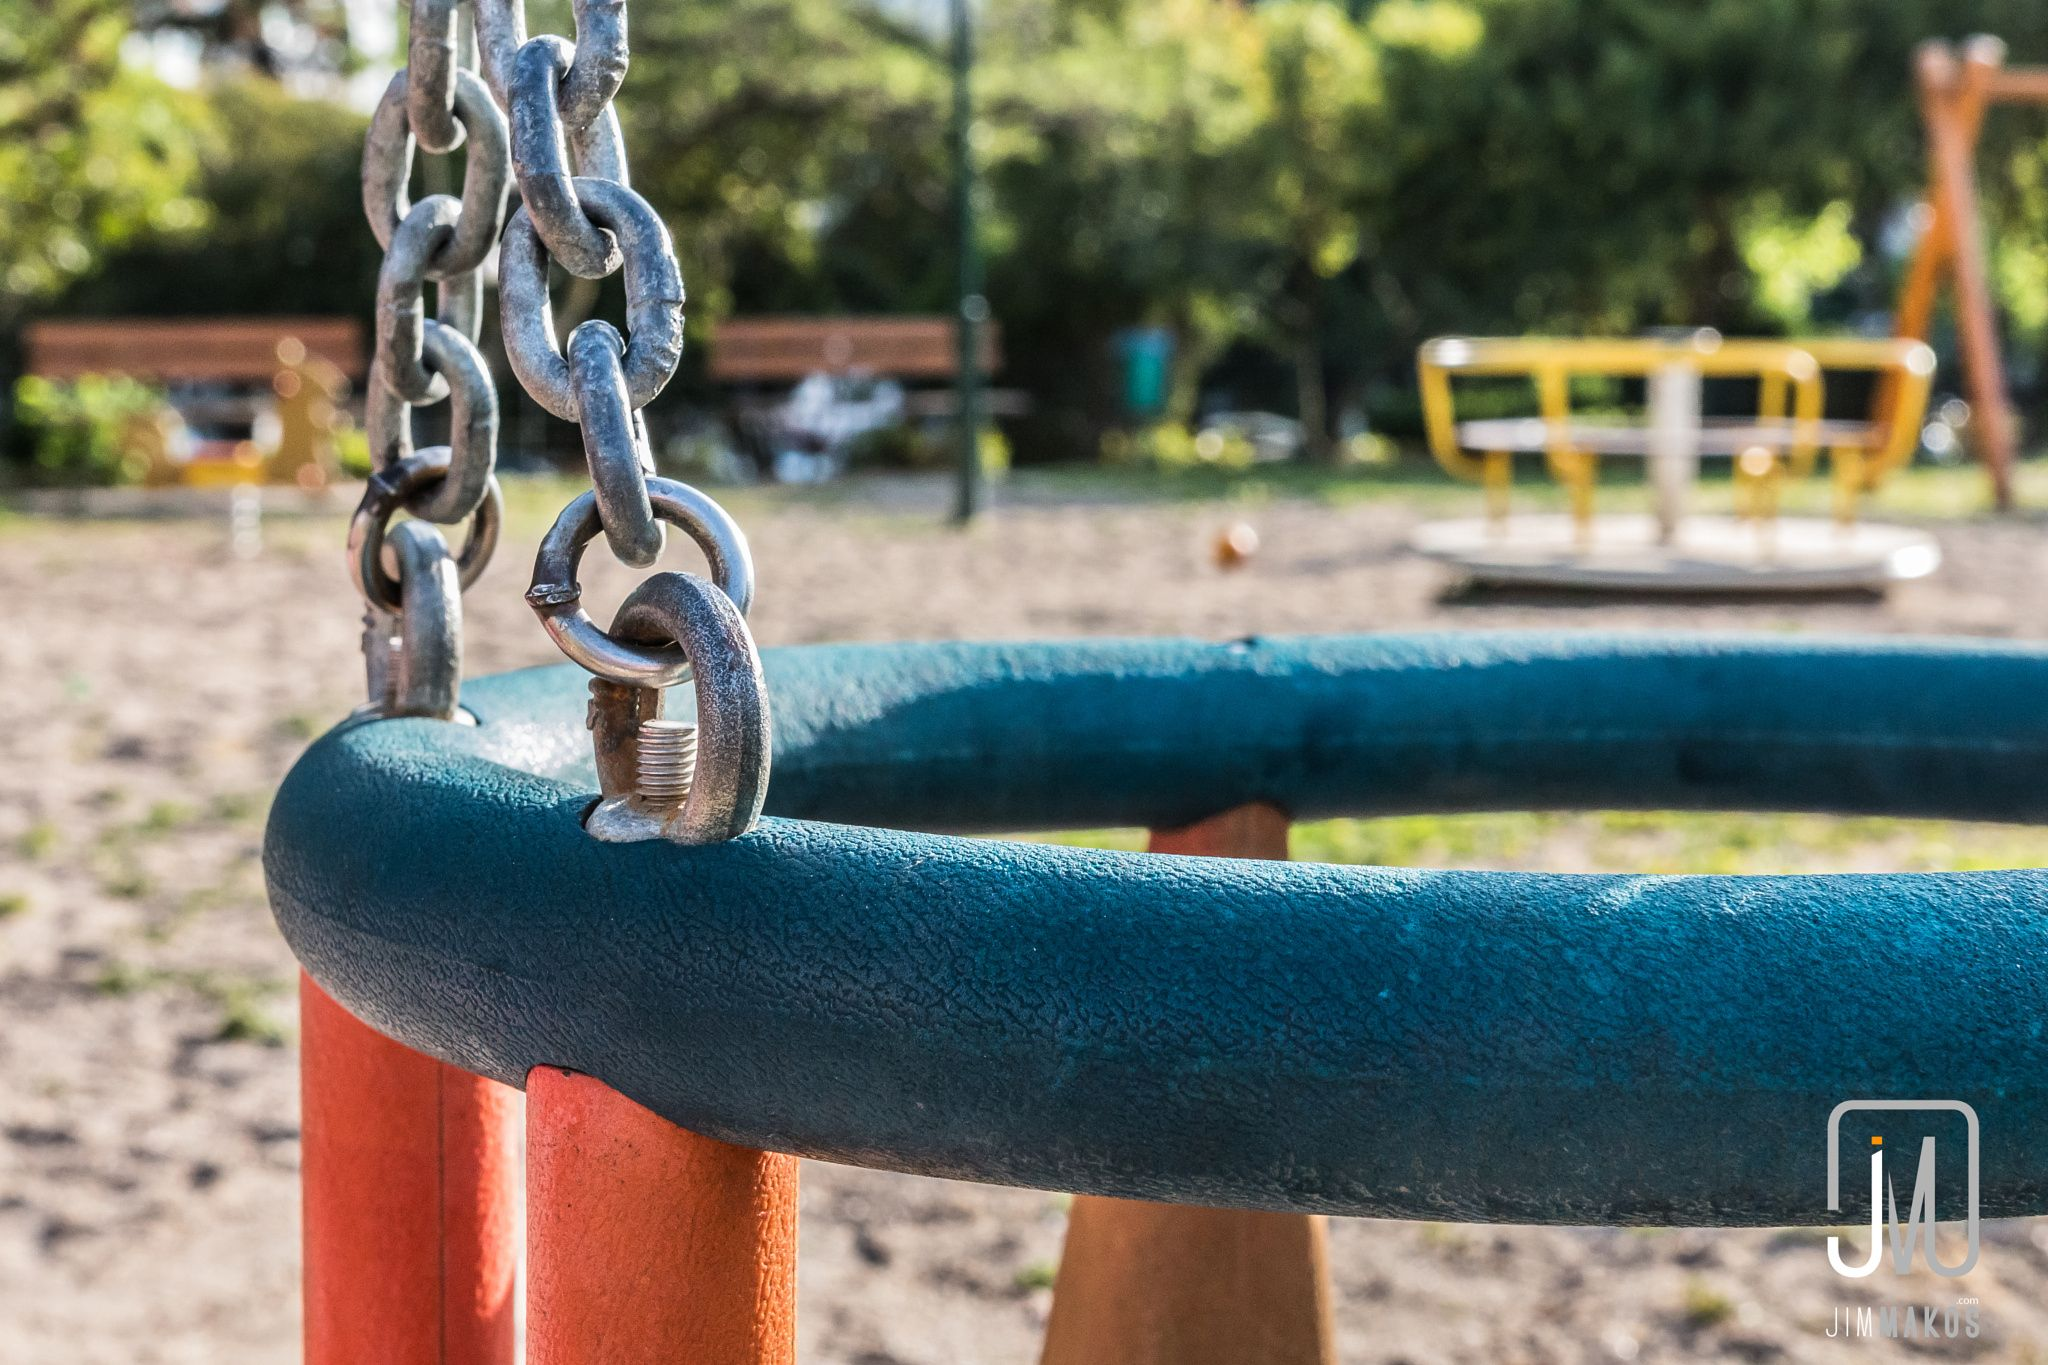 Swing in Playground by Jim Makos on 500px. Closeup of a swing for small children in an outdoor playground.